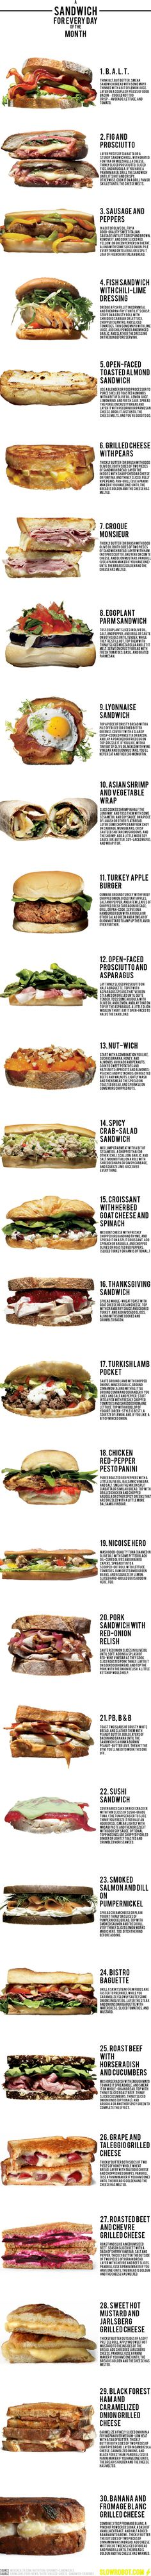 sandwich ideas x 30.